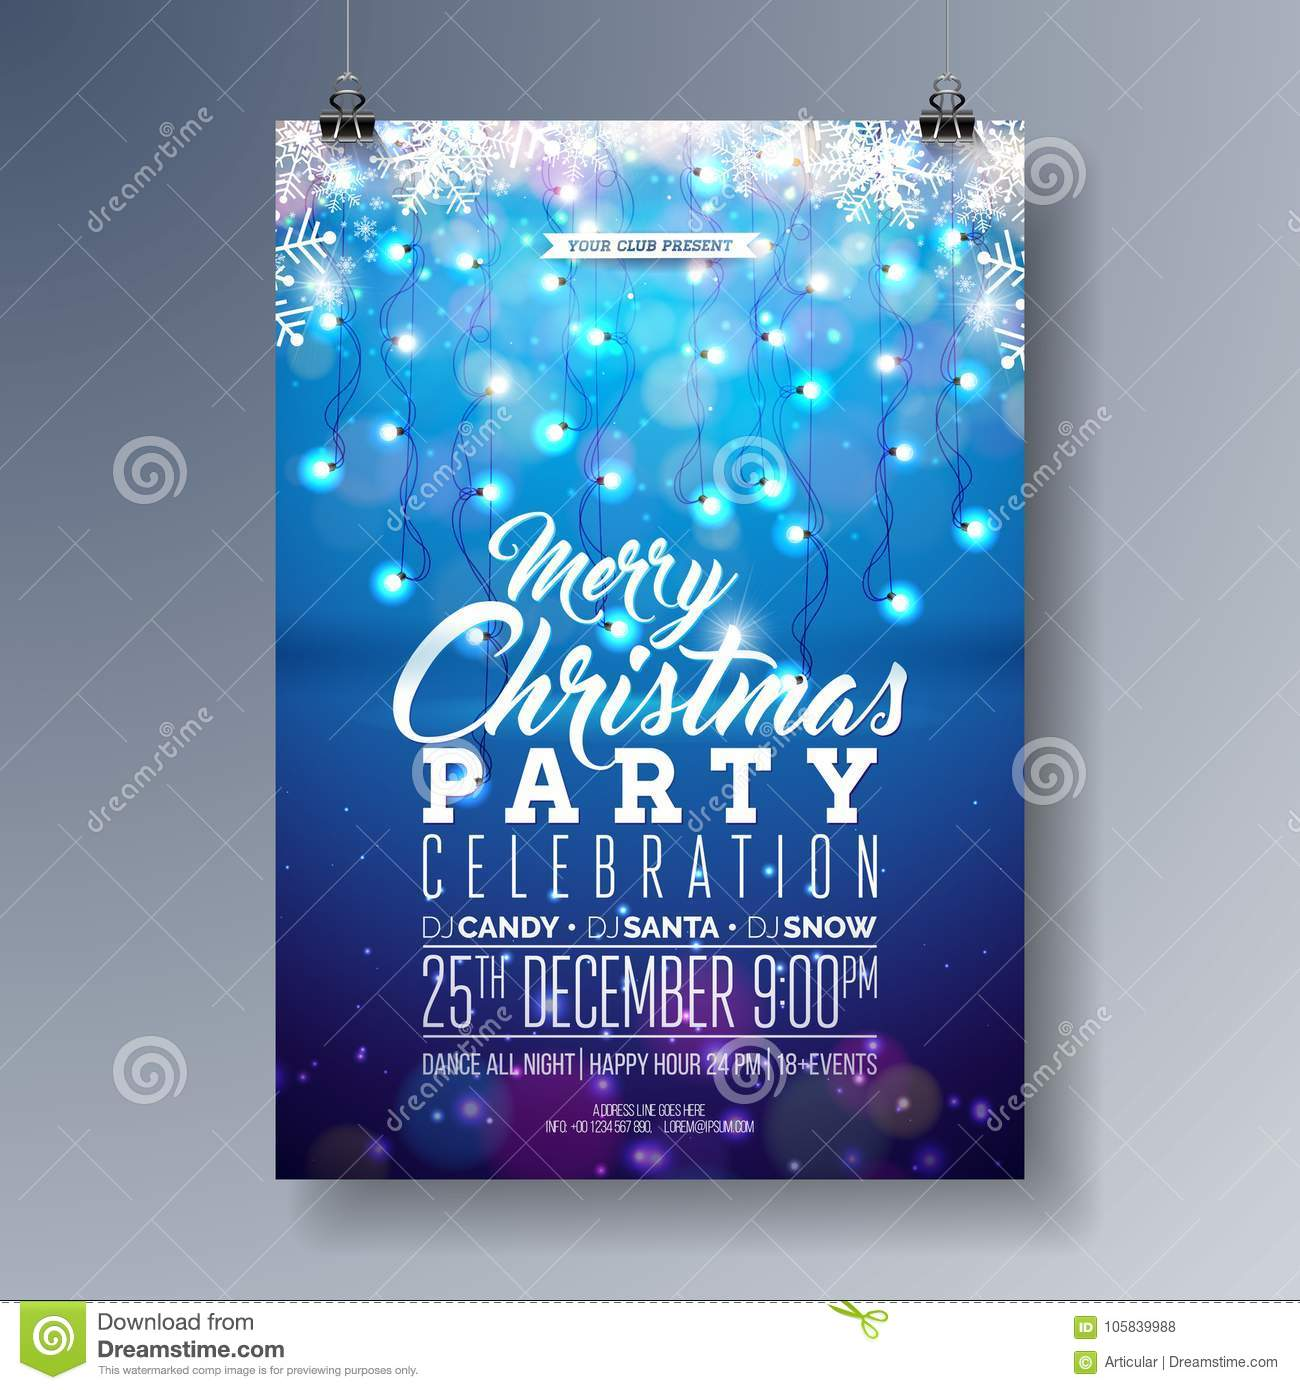 vector merry christmas party flyer design with holiday